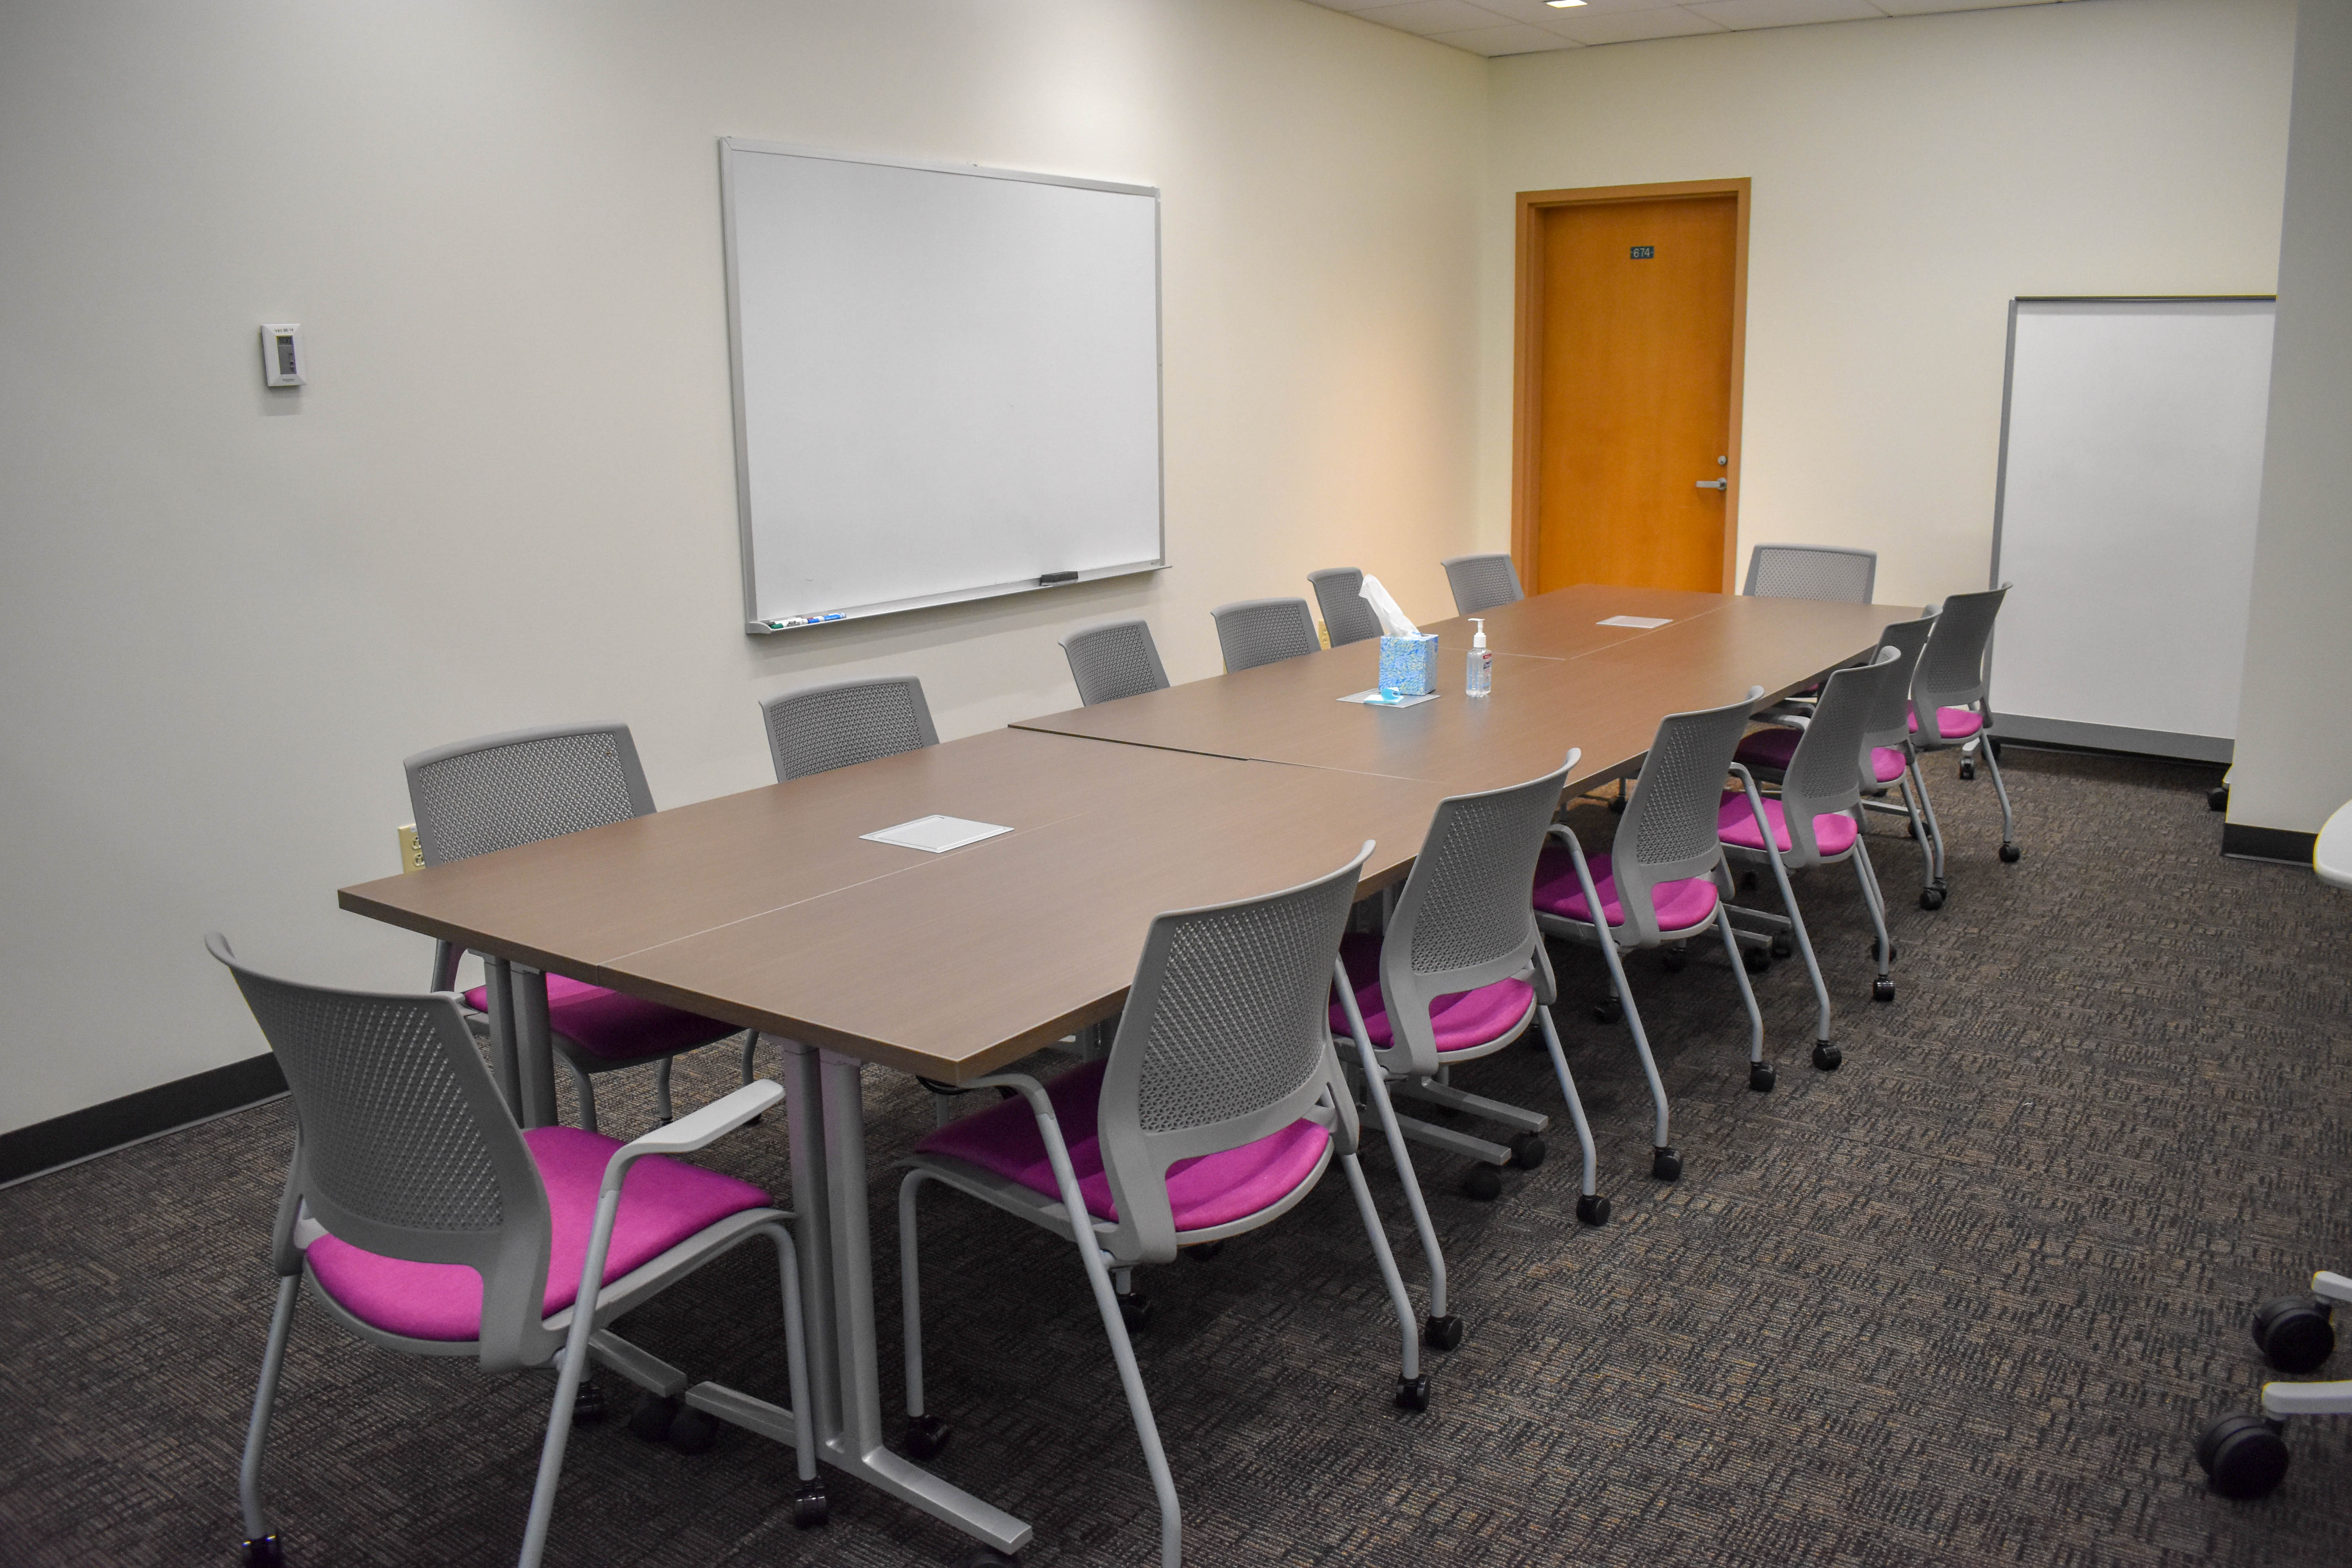 Wilson Wing new classroom in ZSR Library